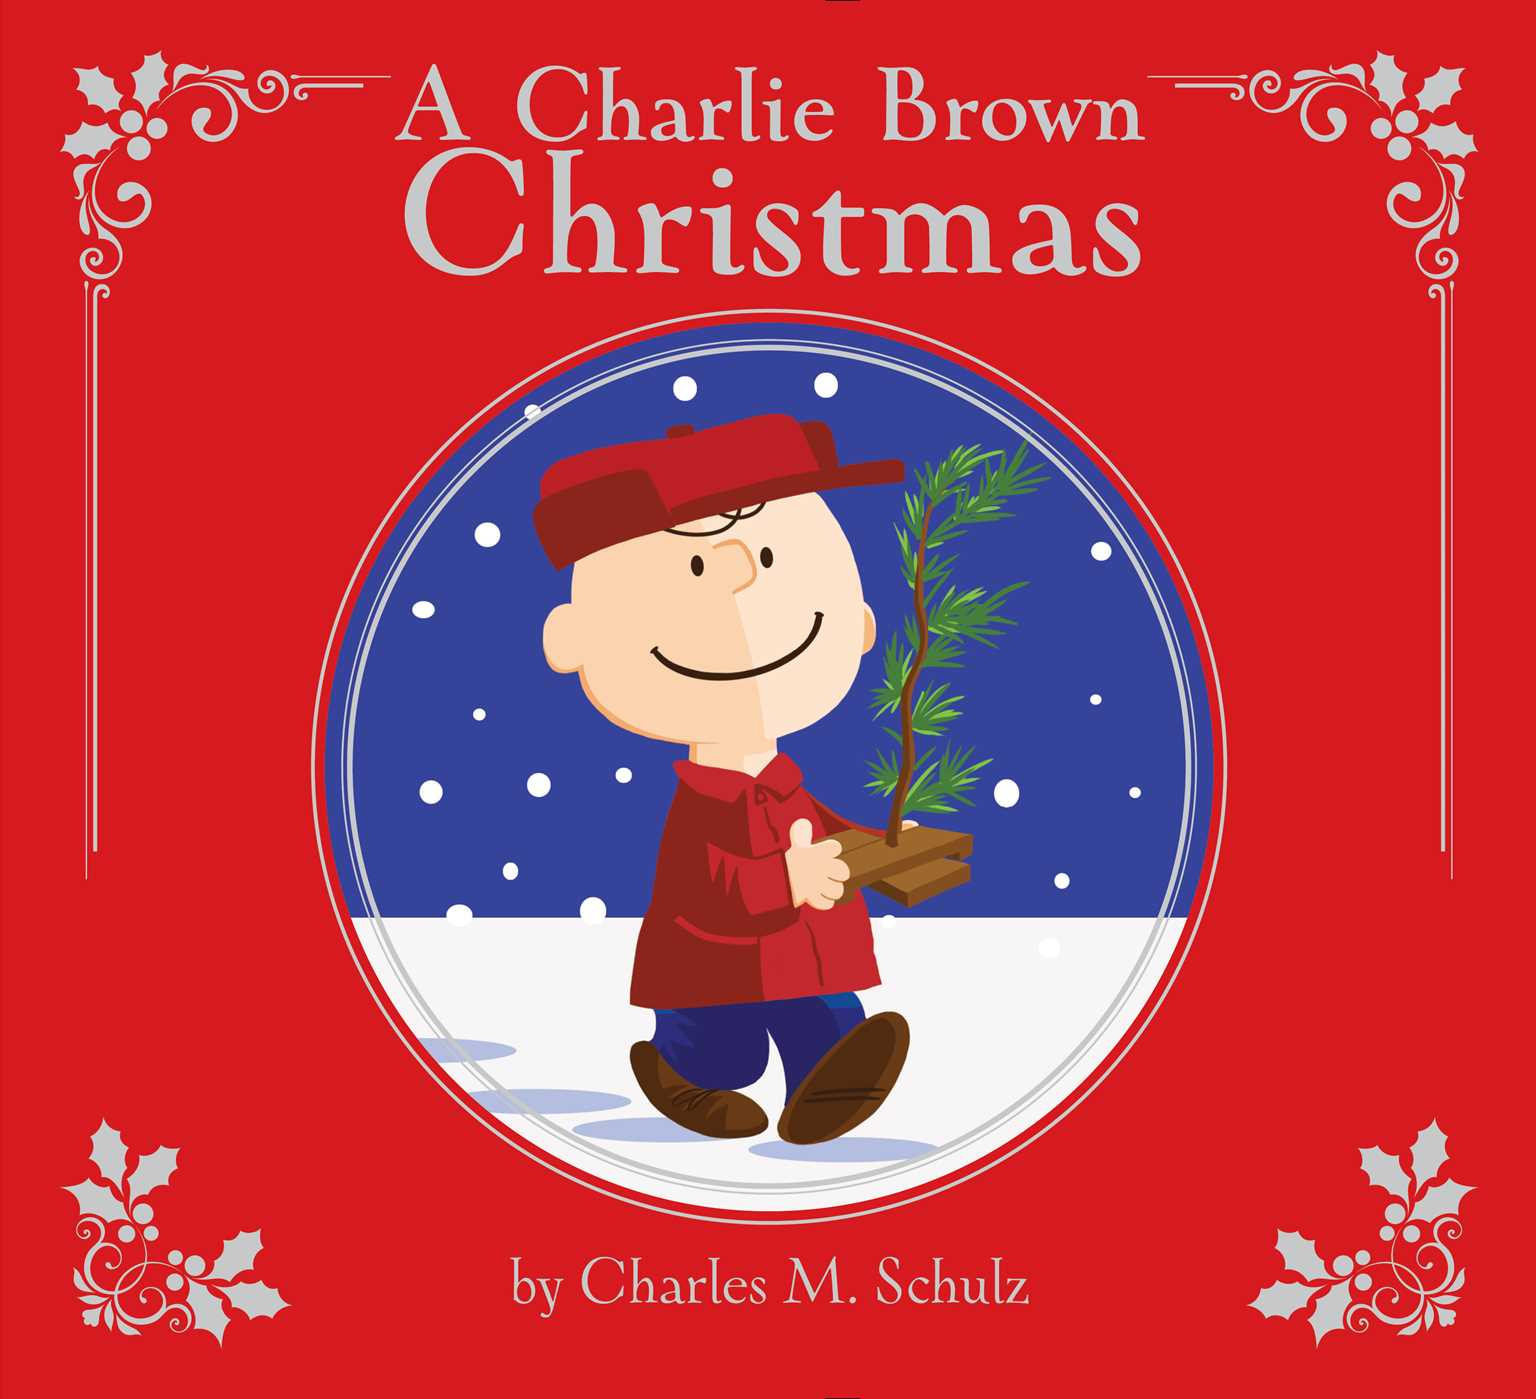 A charlie brown christmas 9781534404557 hr